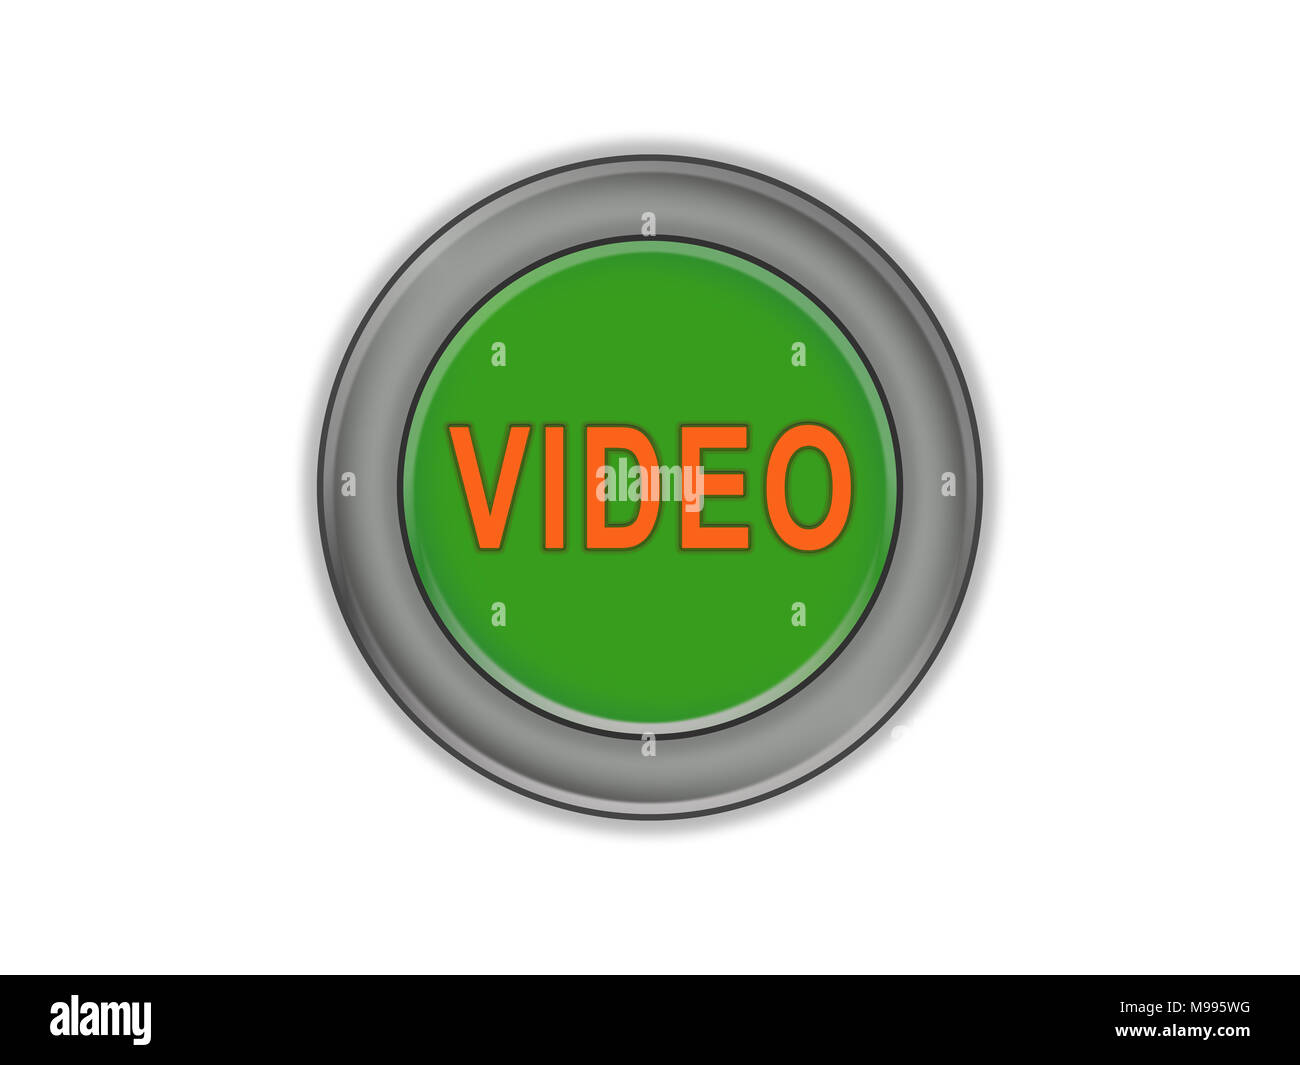 The inscription on the green VIDEO button, volume, white background - Stock Image